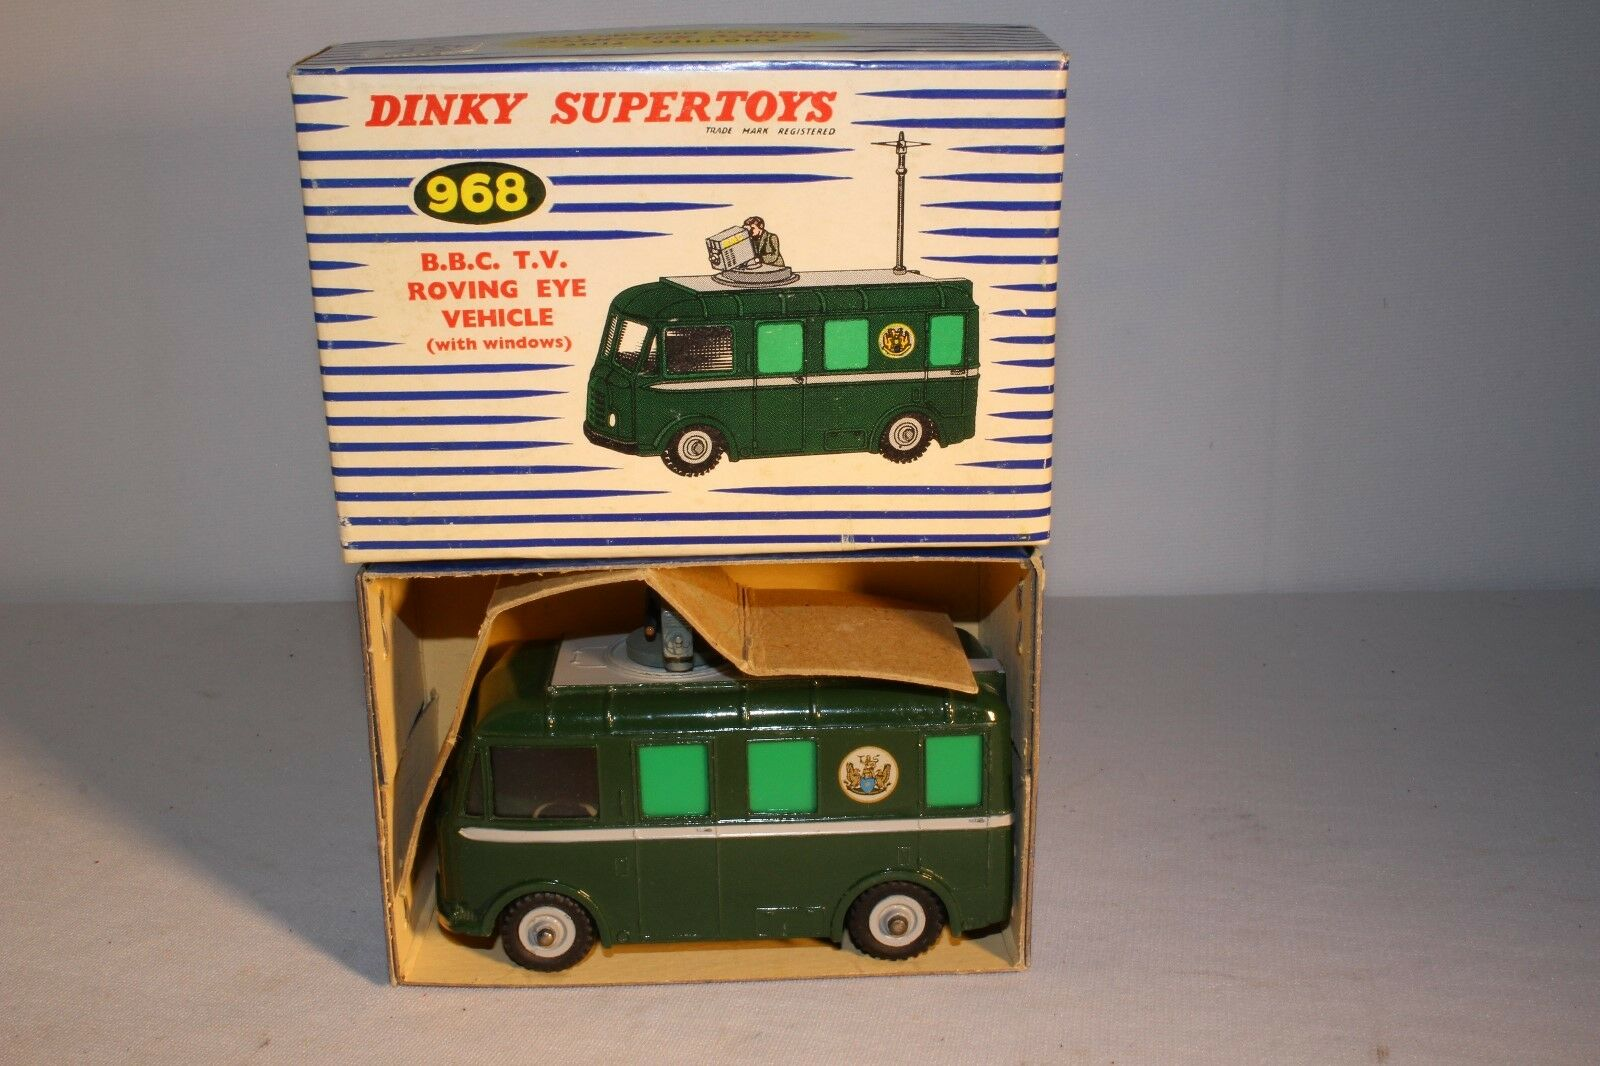 1950 s Dinky Superleks No. 968, B.B.C. TV Roving Eye Fordon, Nice Boxed